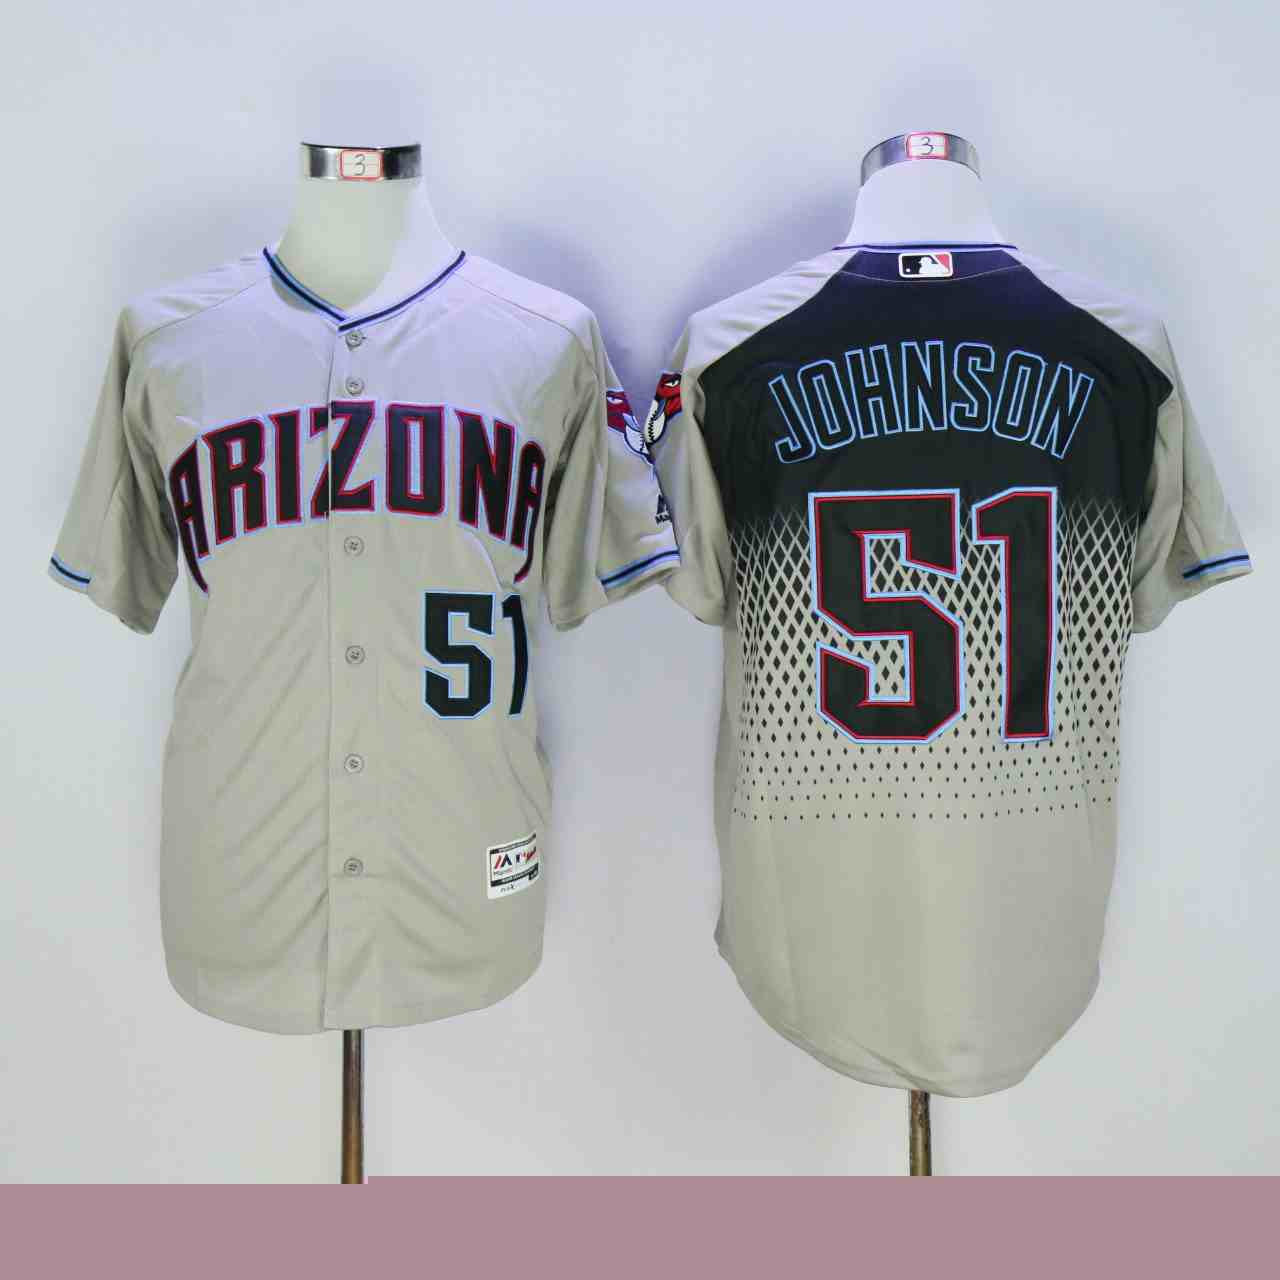 Diamondbacks 51 Randy Johnson Gray Teal Flexbase Jersey